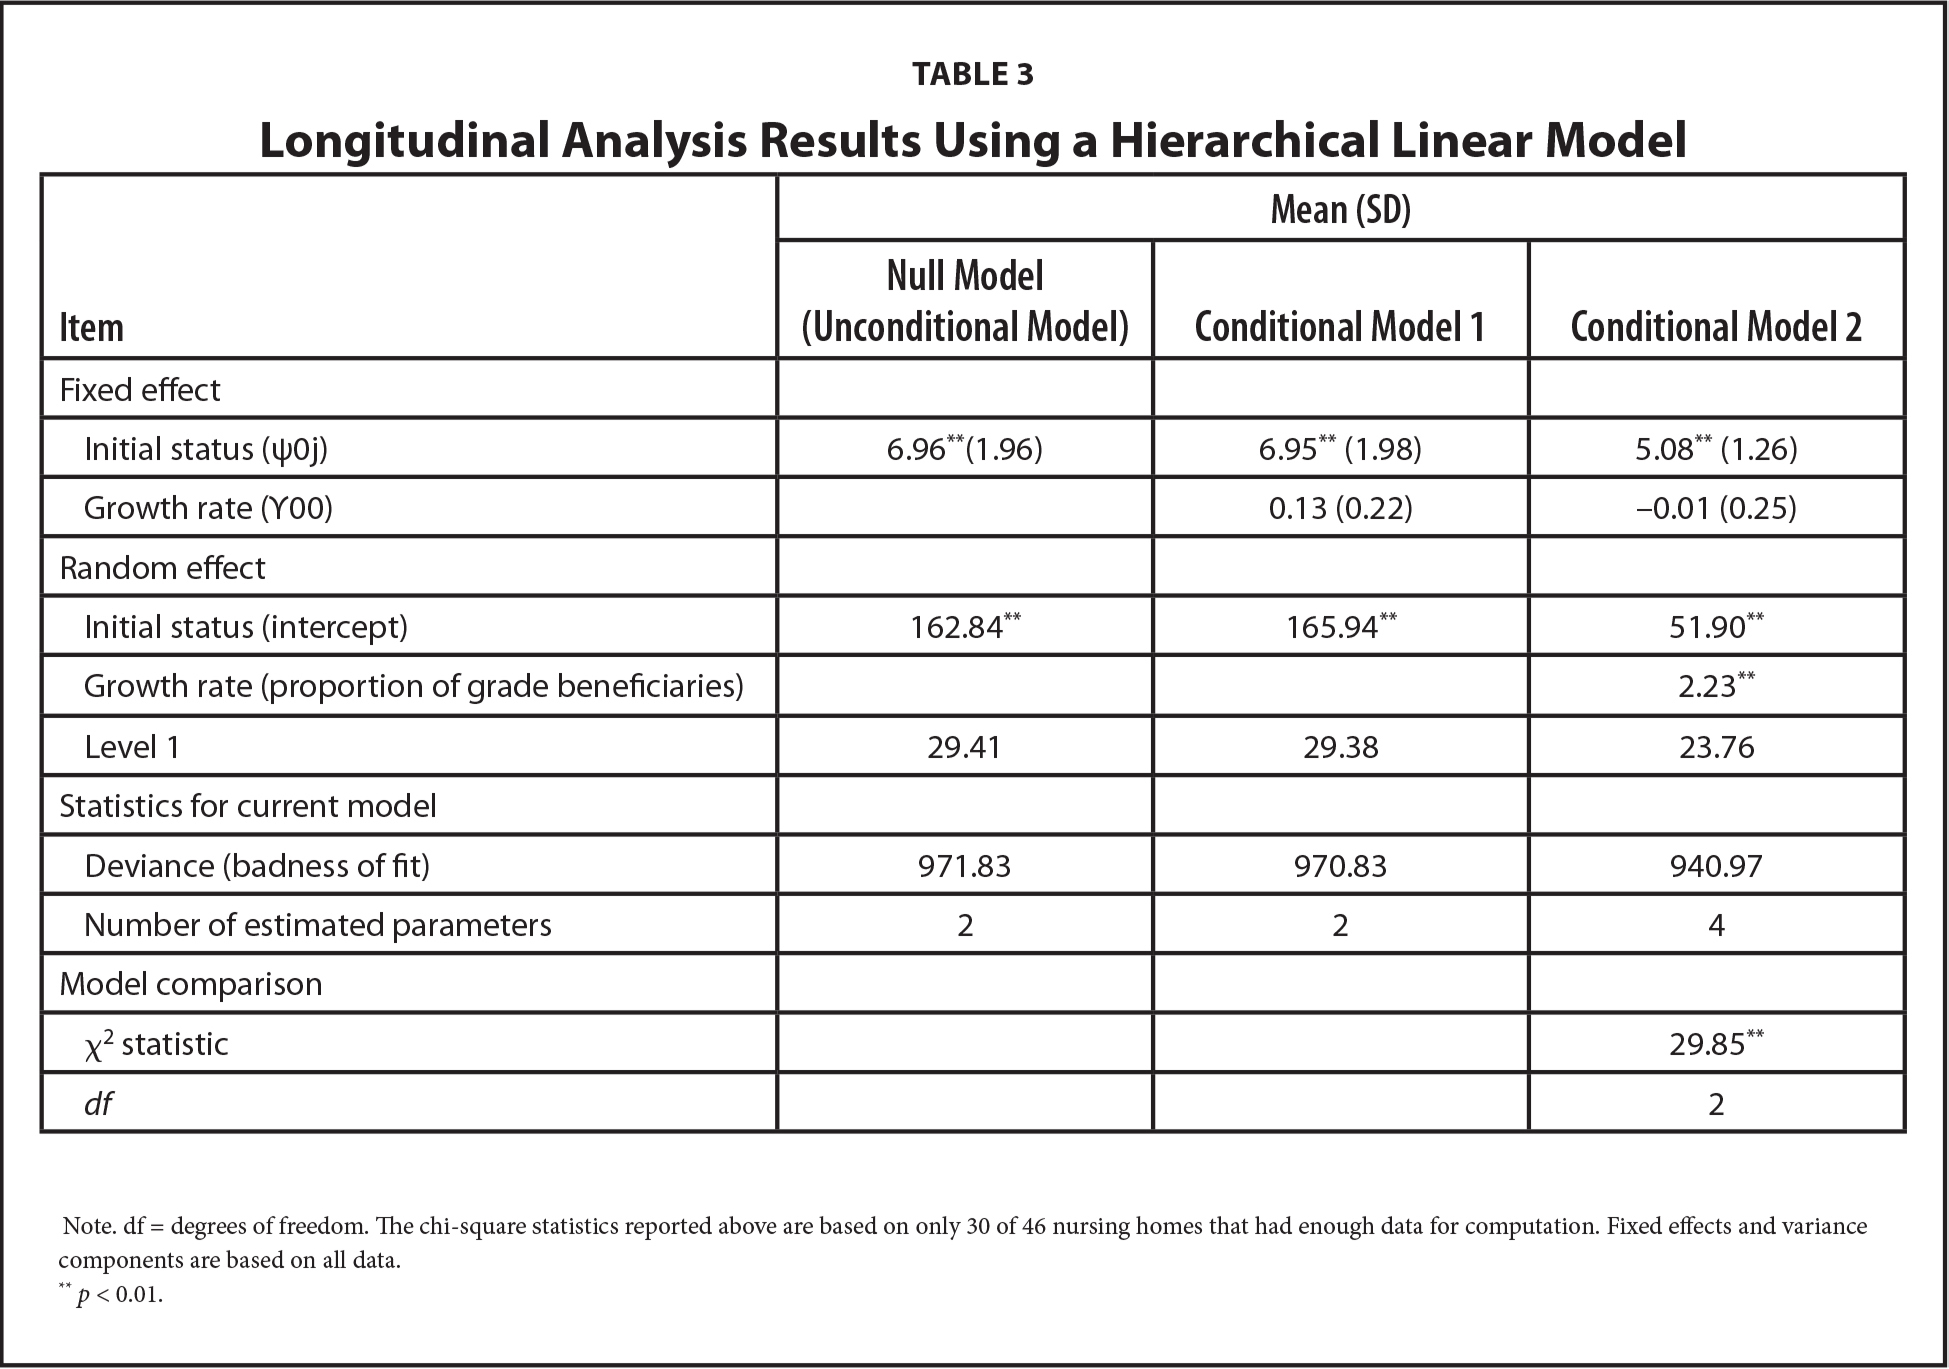 Longitudinal Analysis Results Using a Hierarchical Linear Model